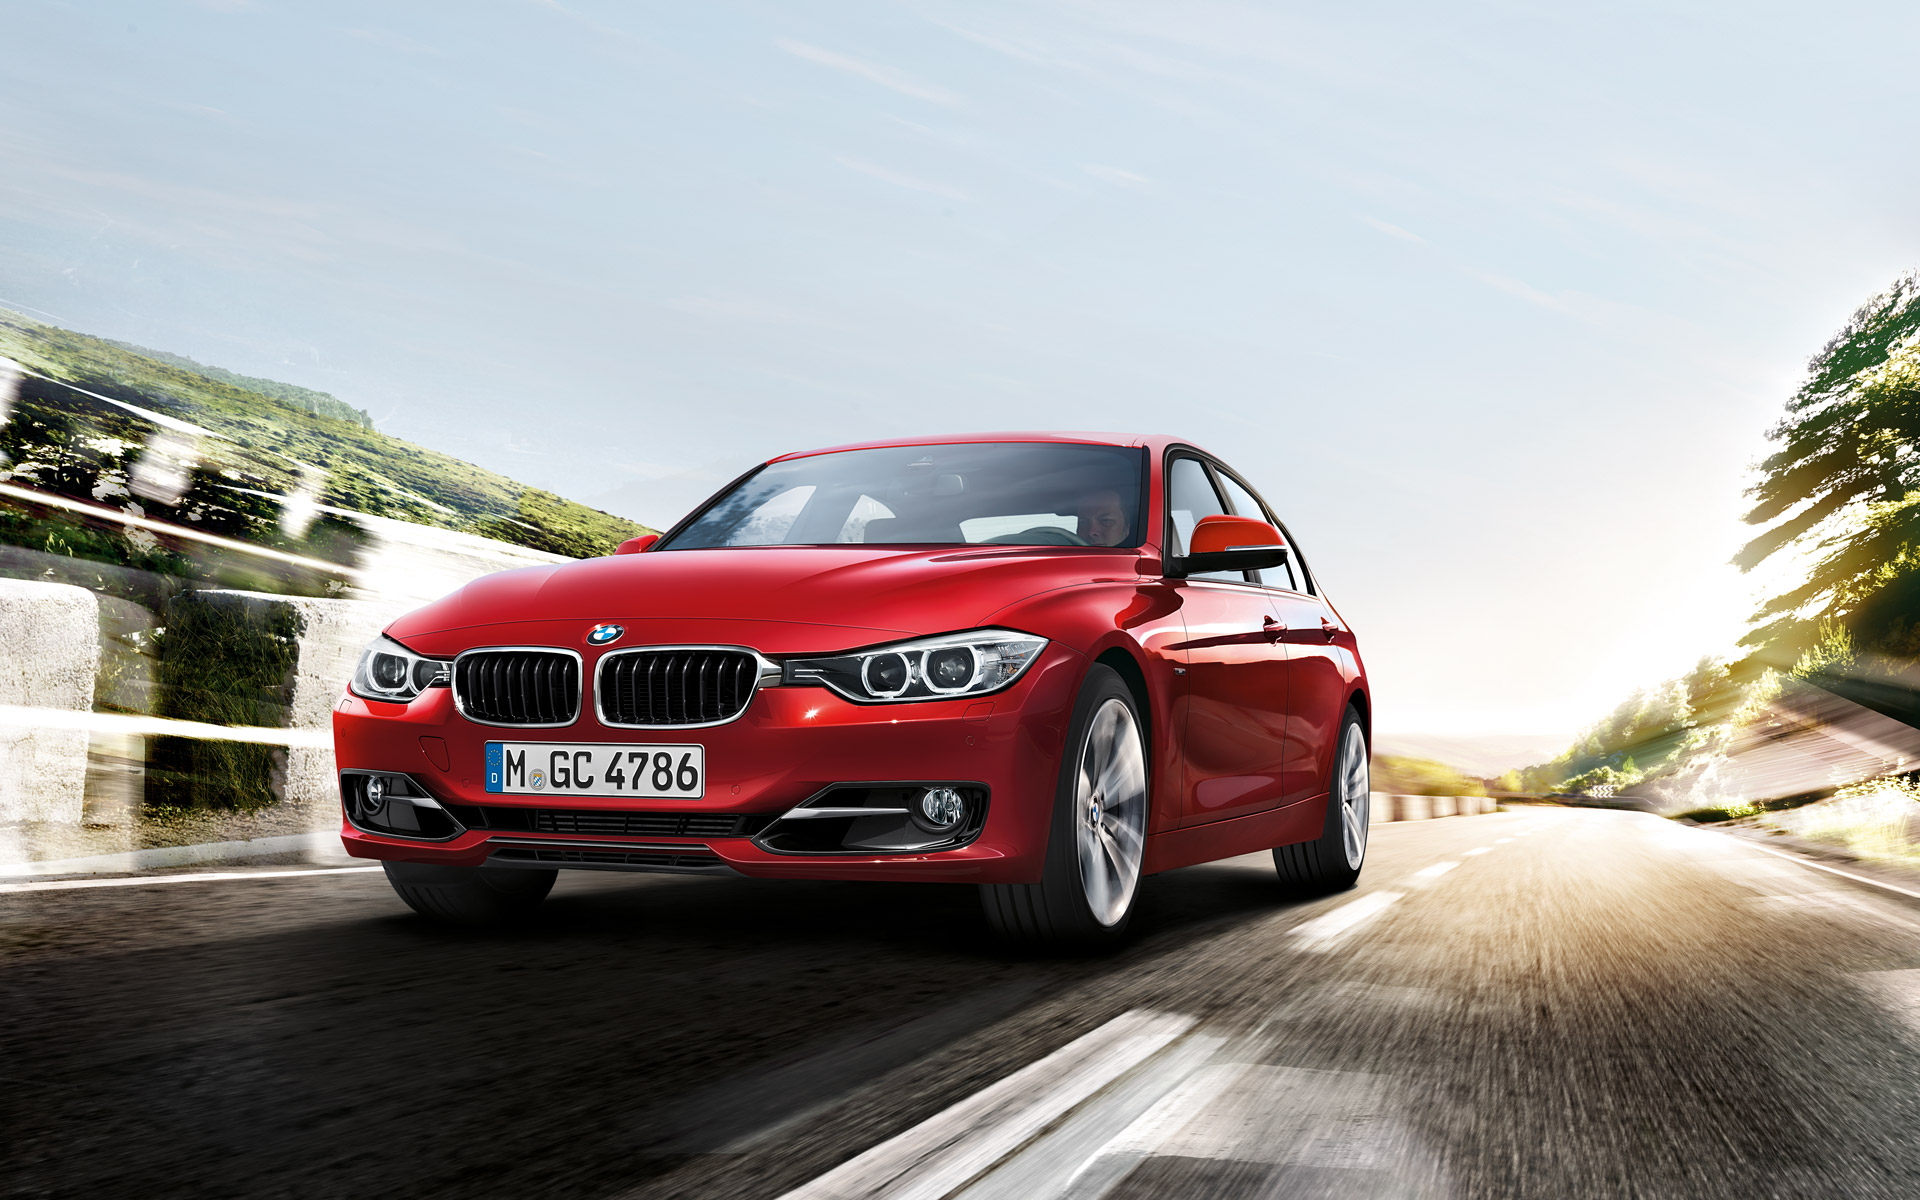 hd wallpapers of bmw cars